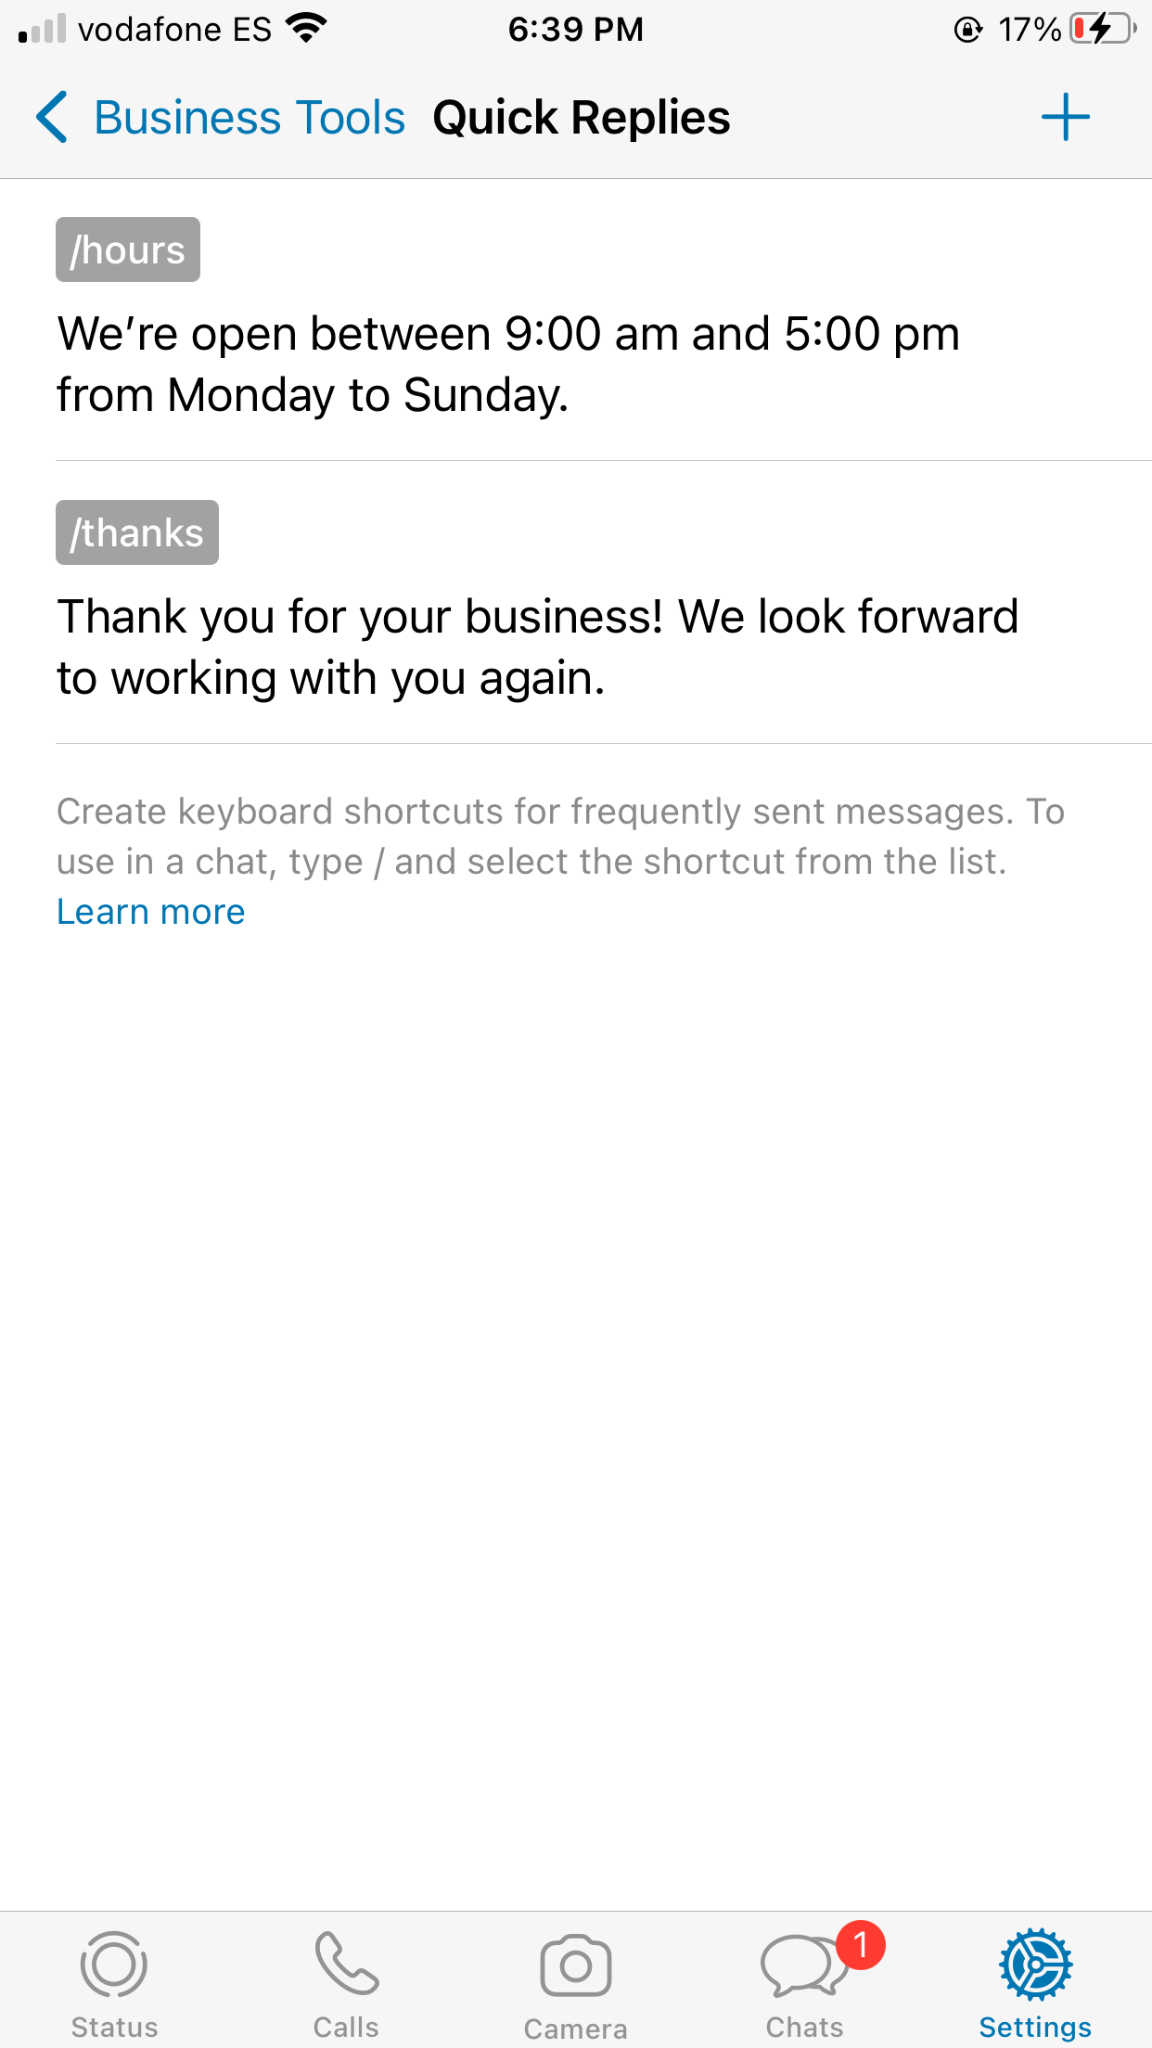 quick replies with whatsapp business tools